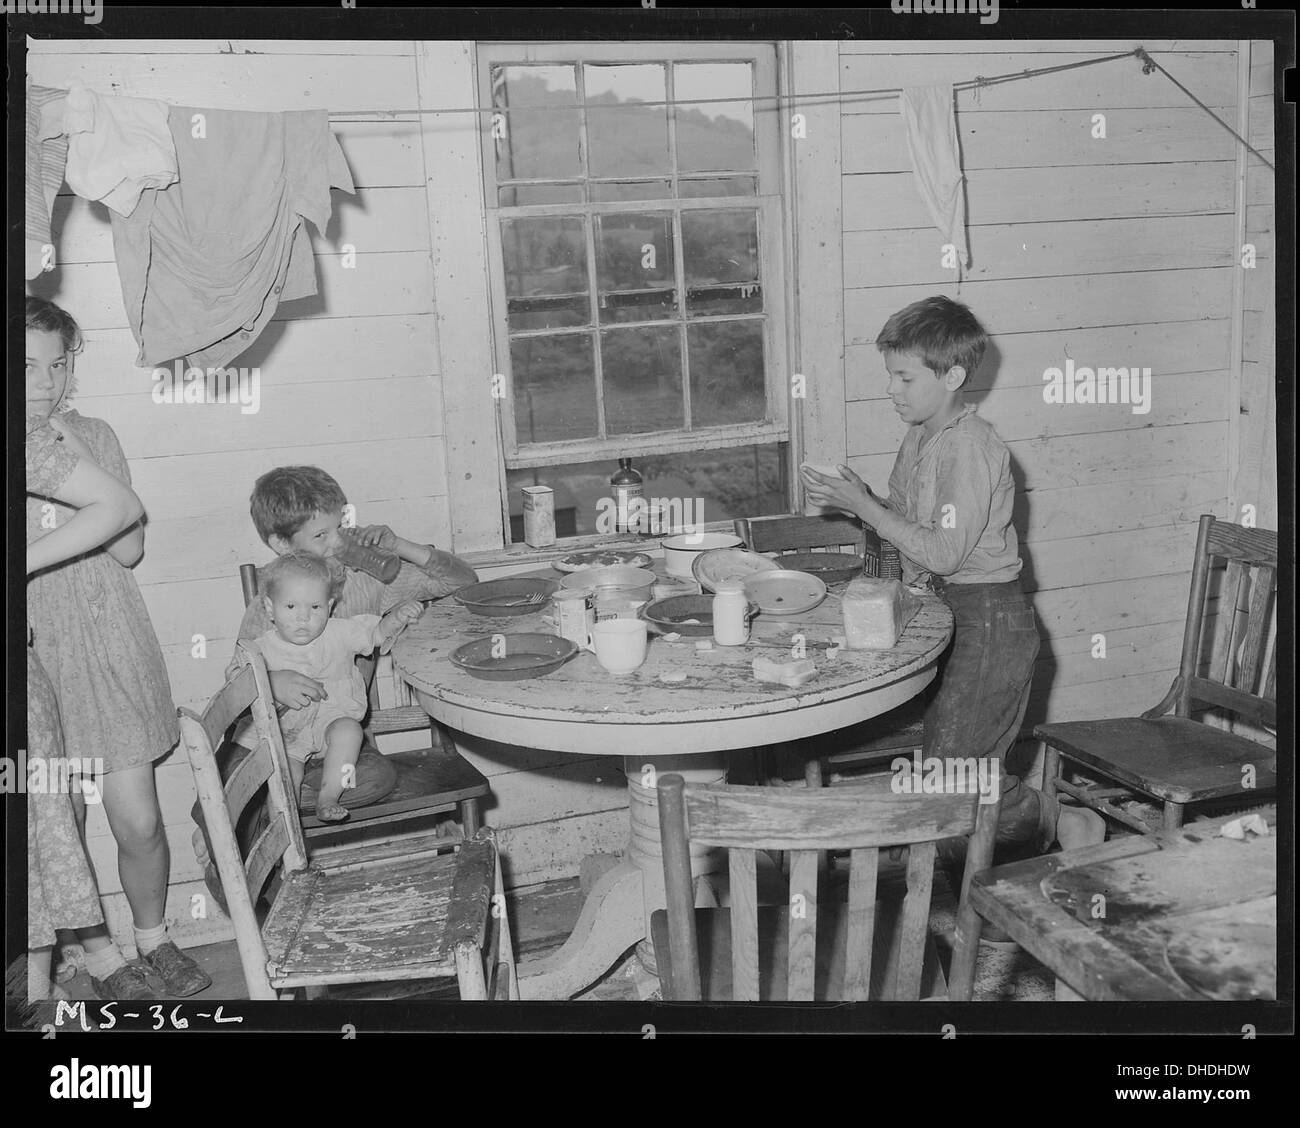 052d81419fe7 The Vintage Rooms Black and White Stock Photos   Images - Page 2 - Alamy